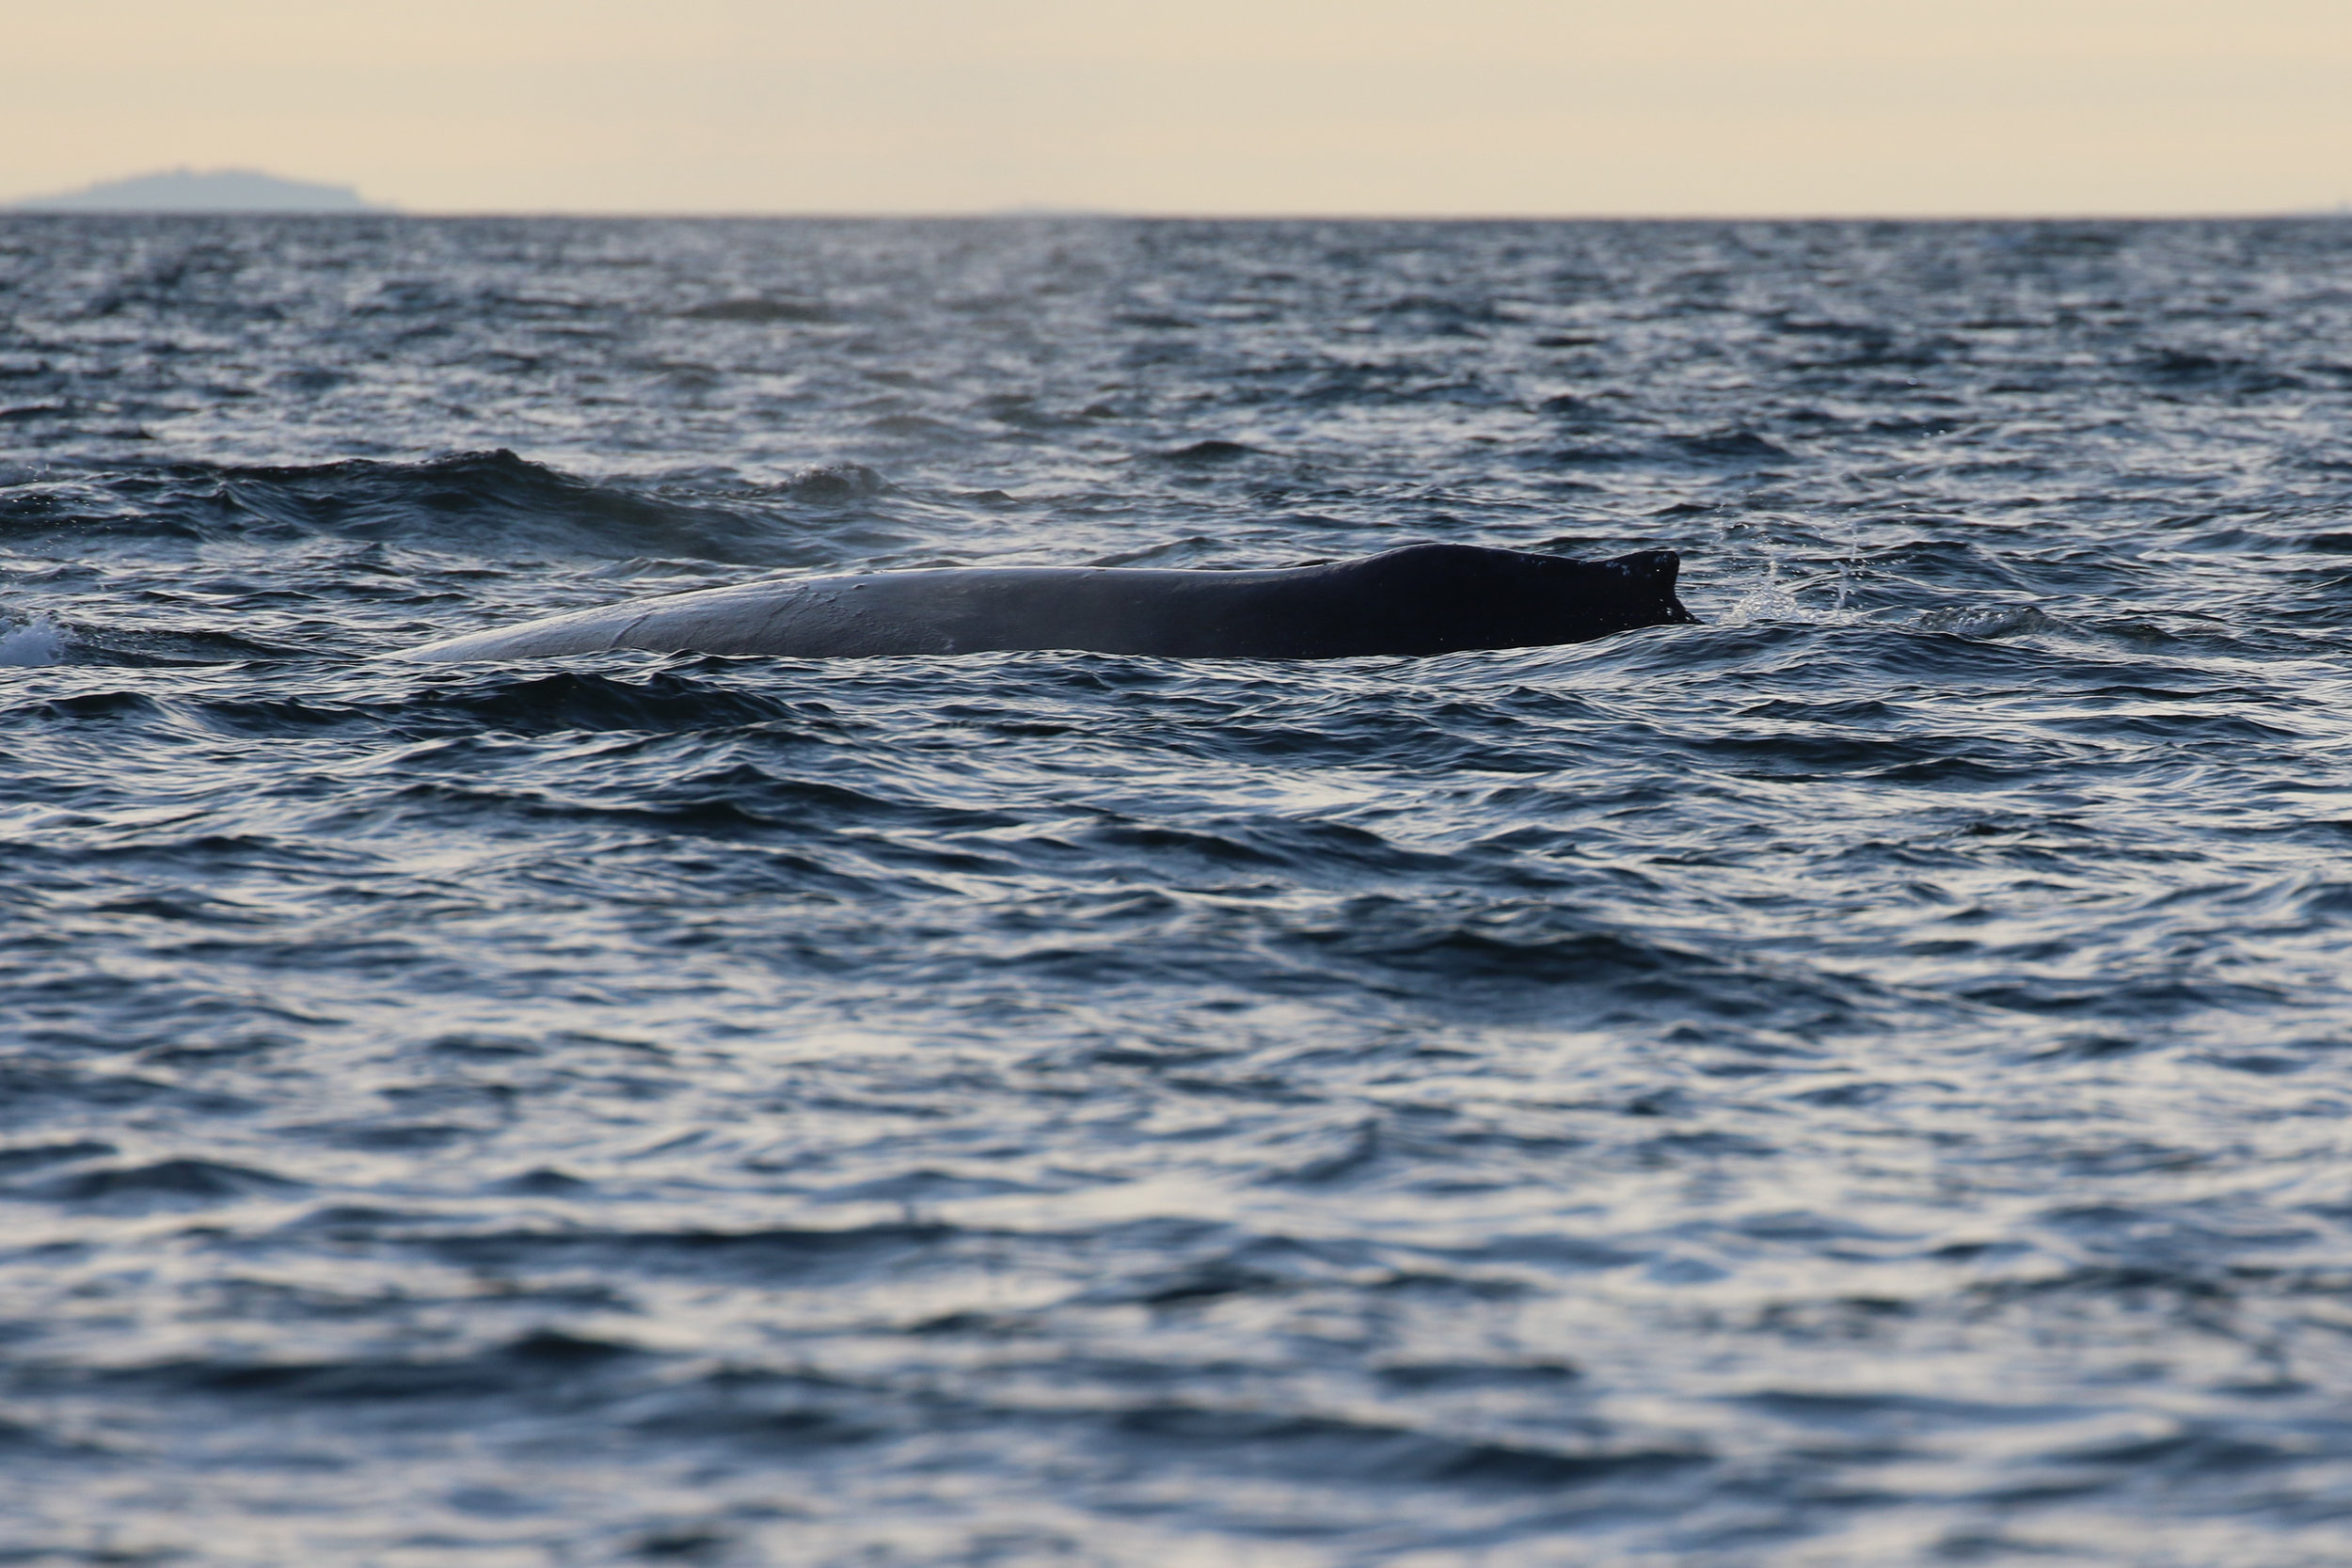 A mystery humpback surfacing in the sunset.